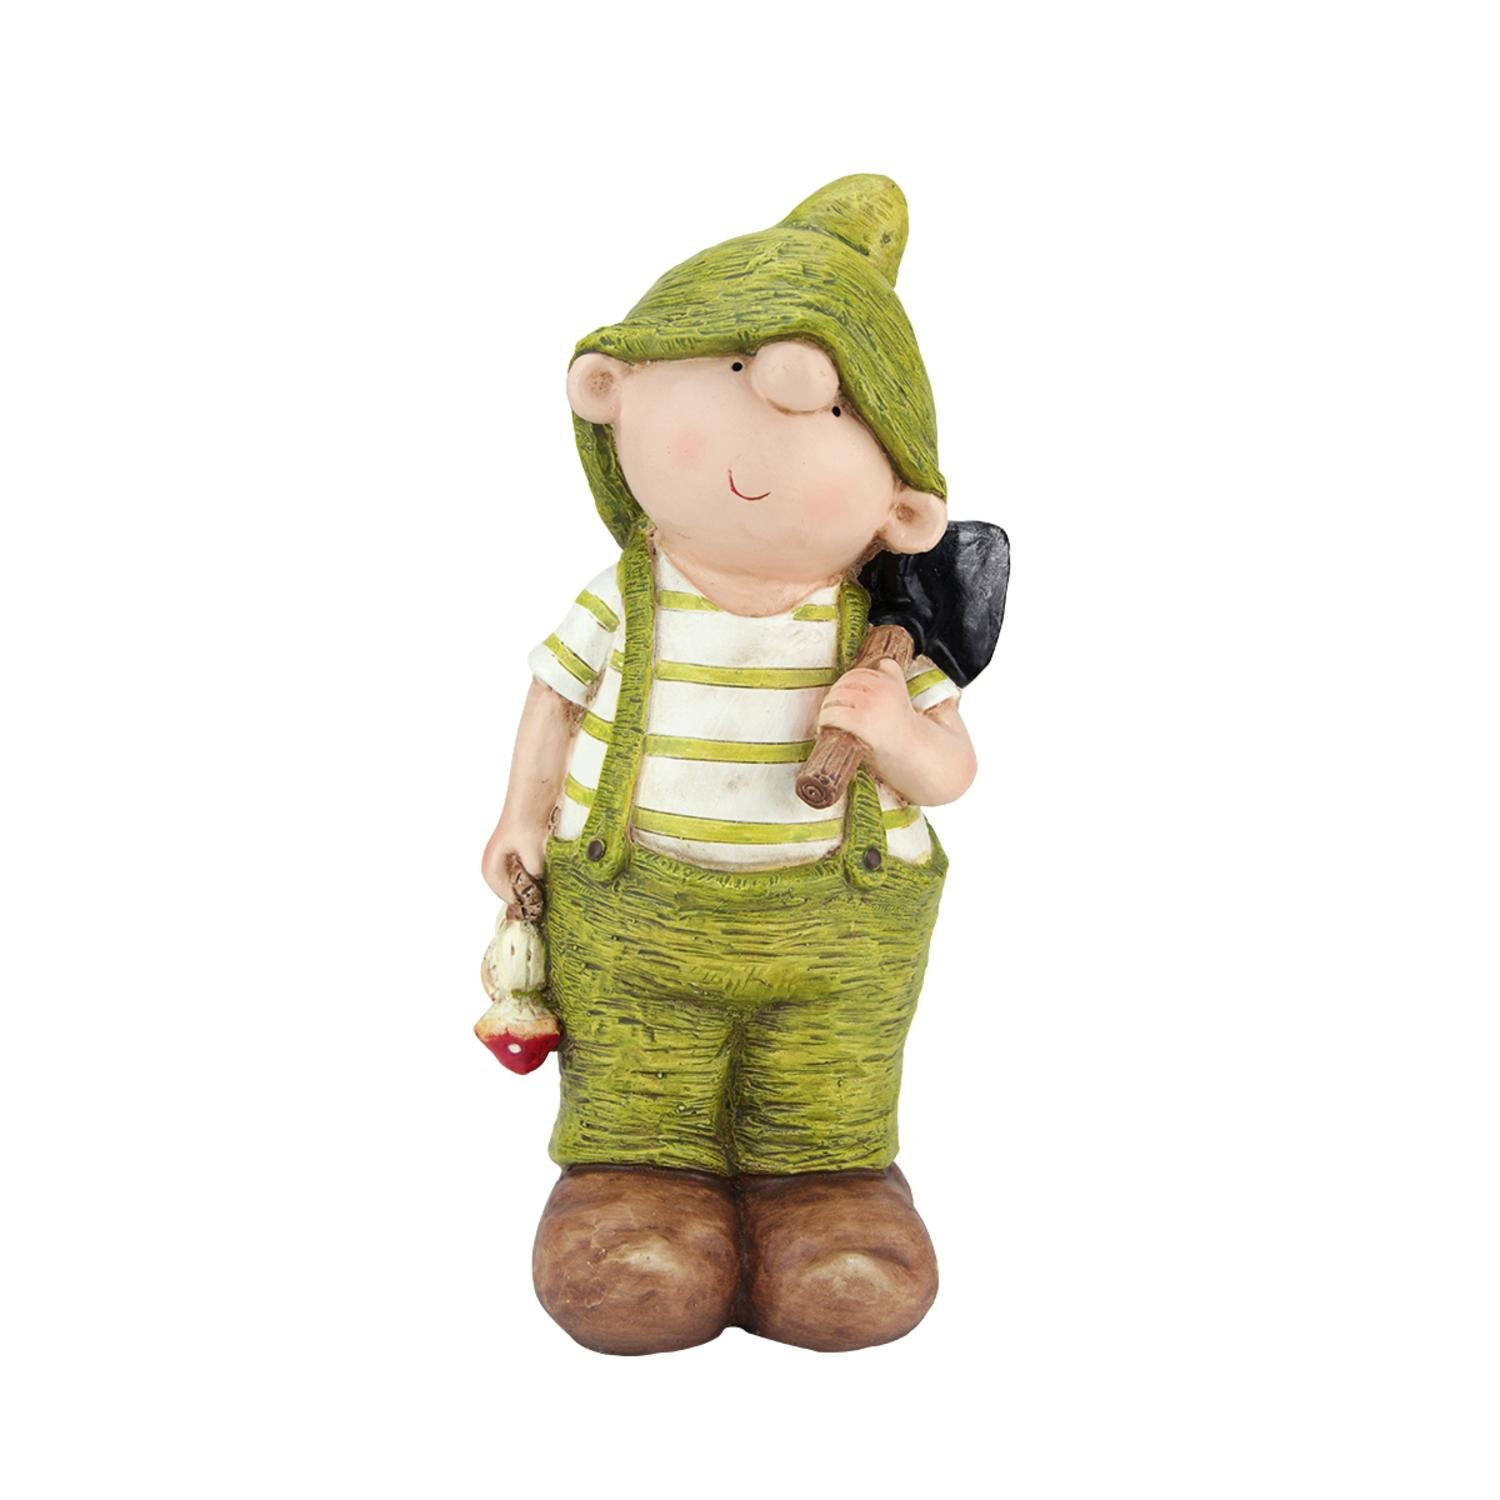 Northlight QQ83121 Young Boy Gnome with Shovel Spring Outdoor Garden Patio Figure Statuary and Fountains, 23'', Green